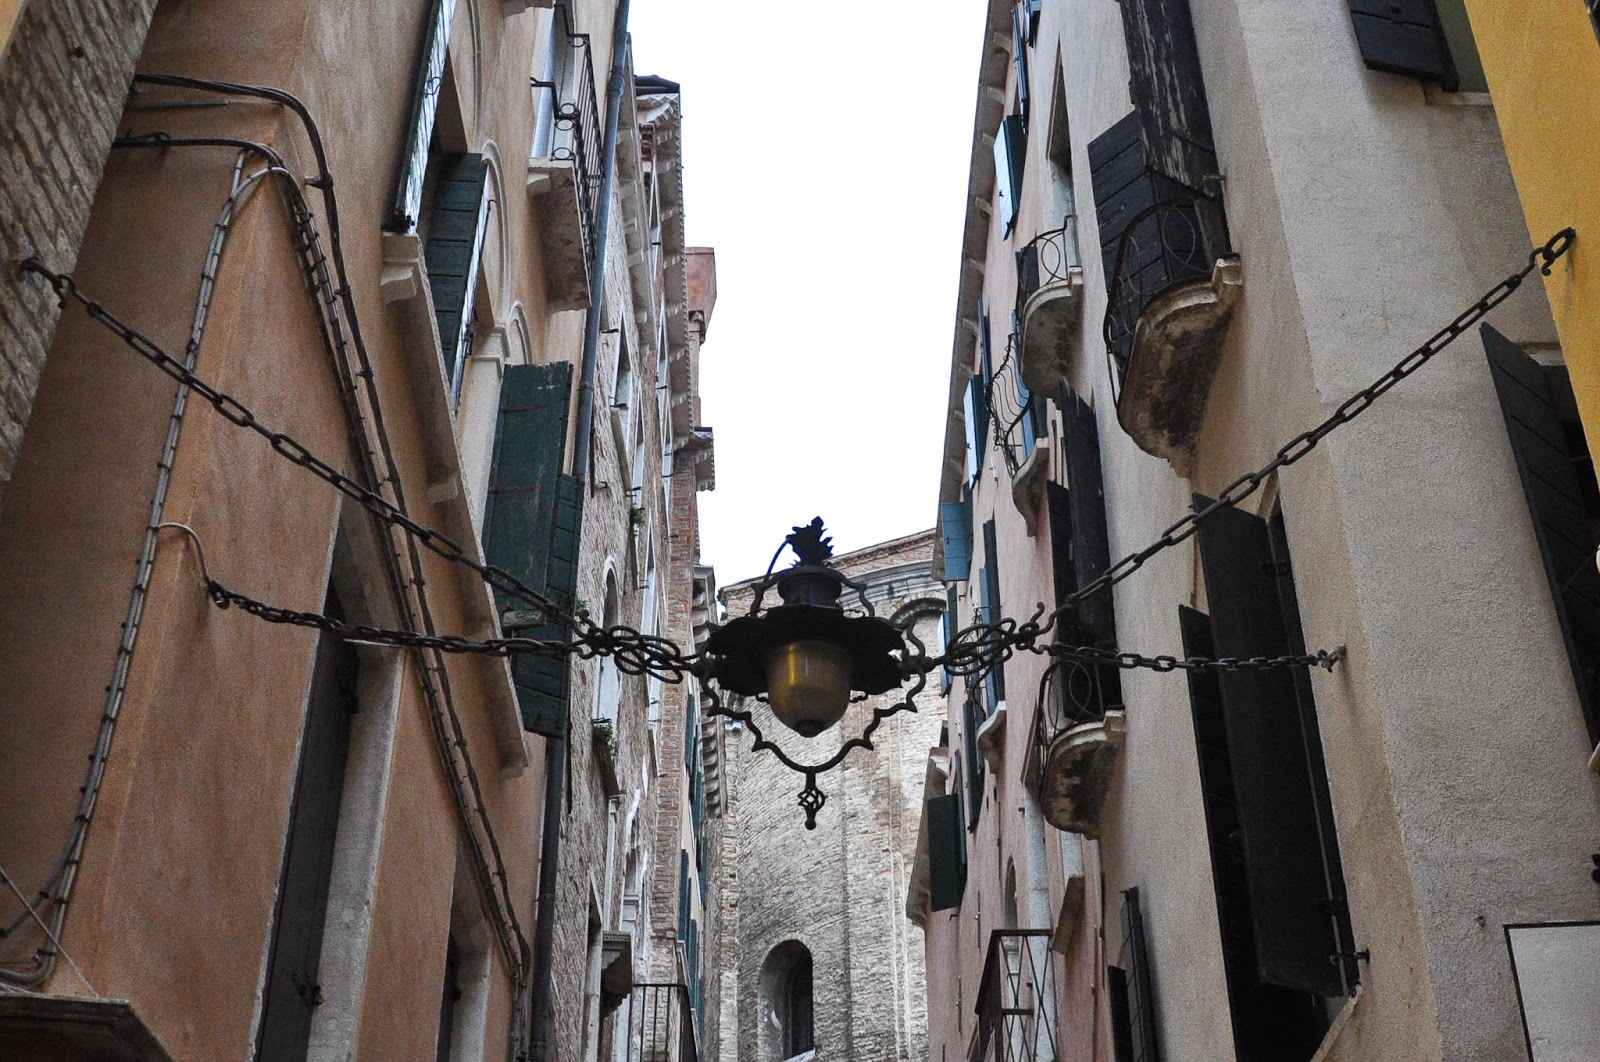 A street light in Venice